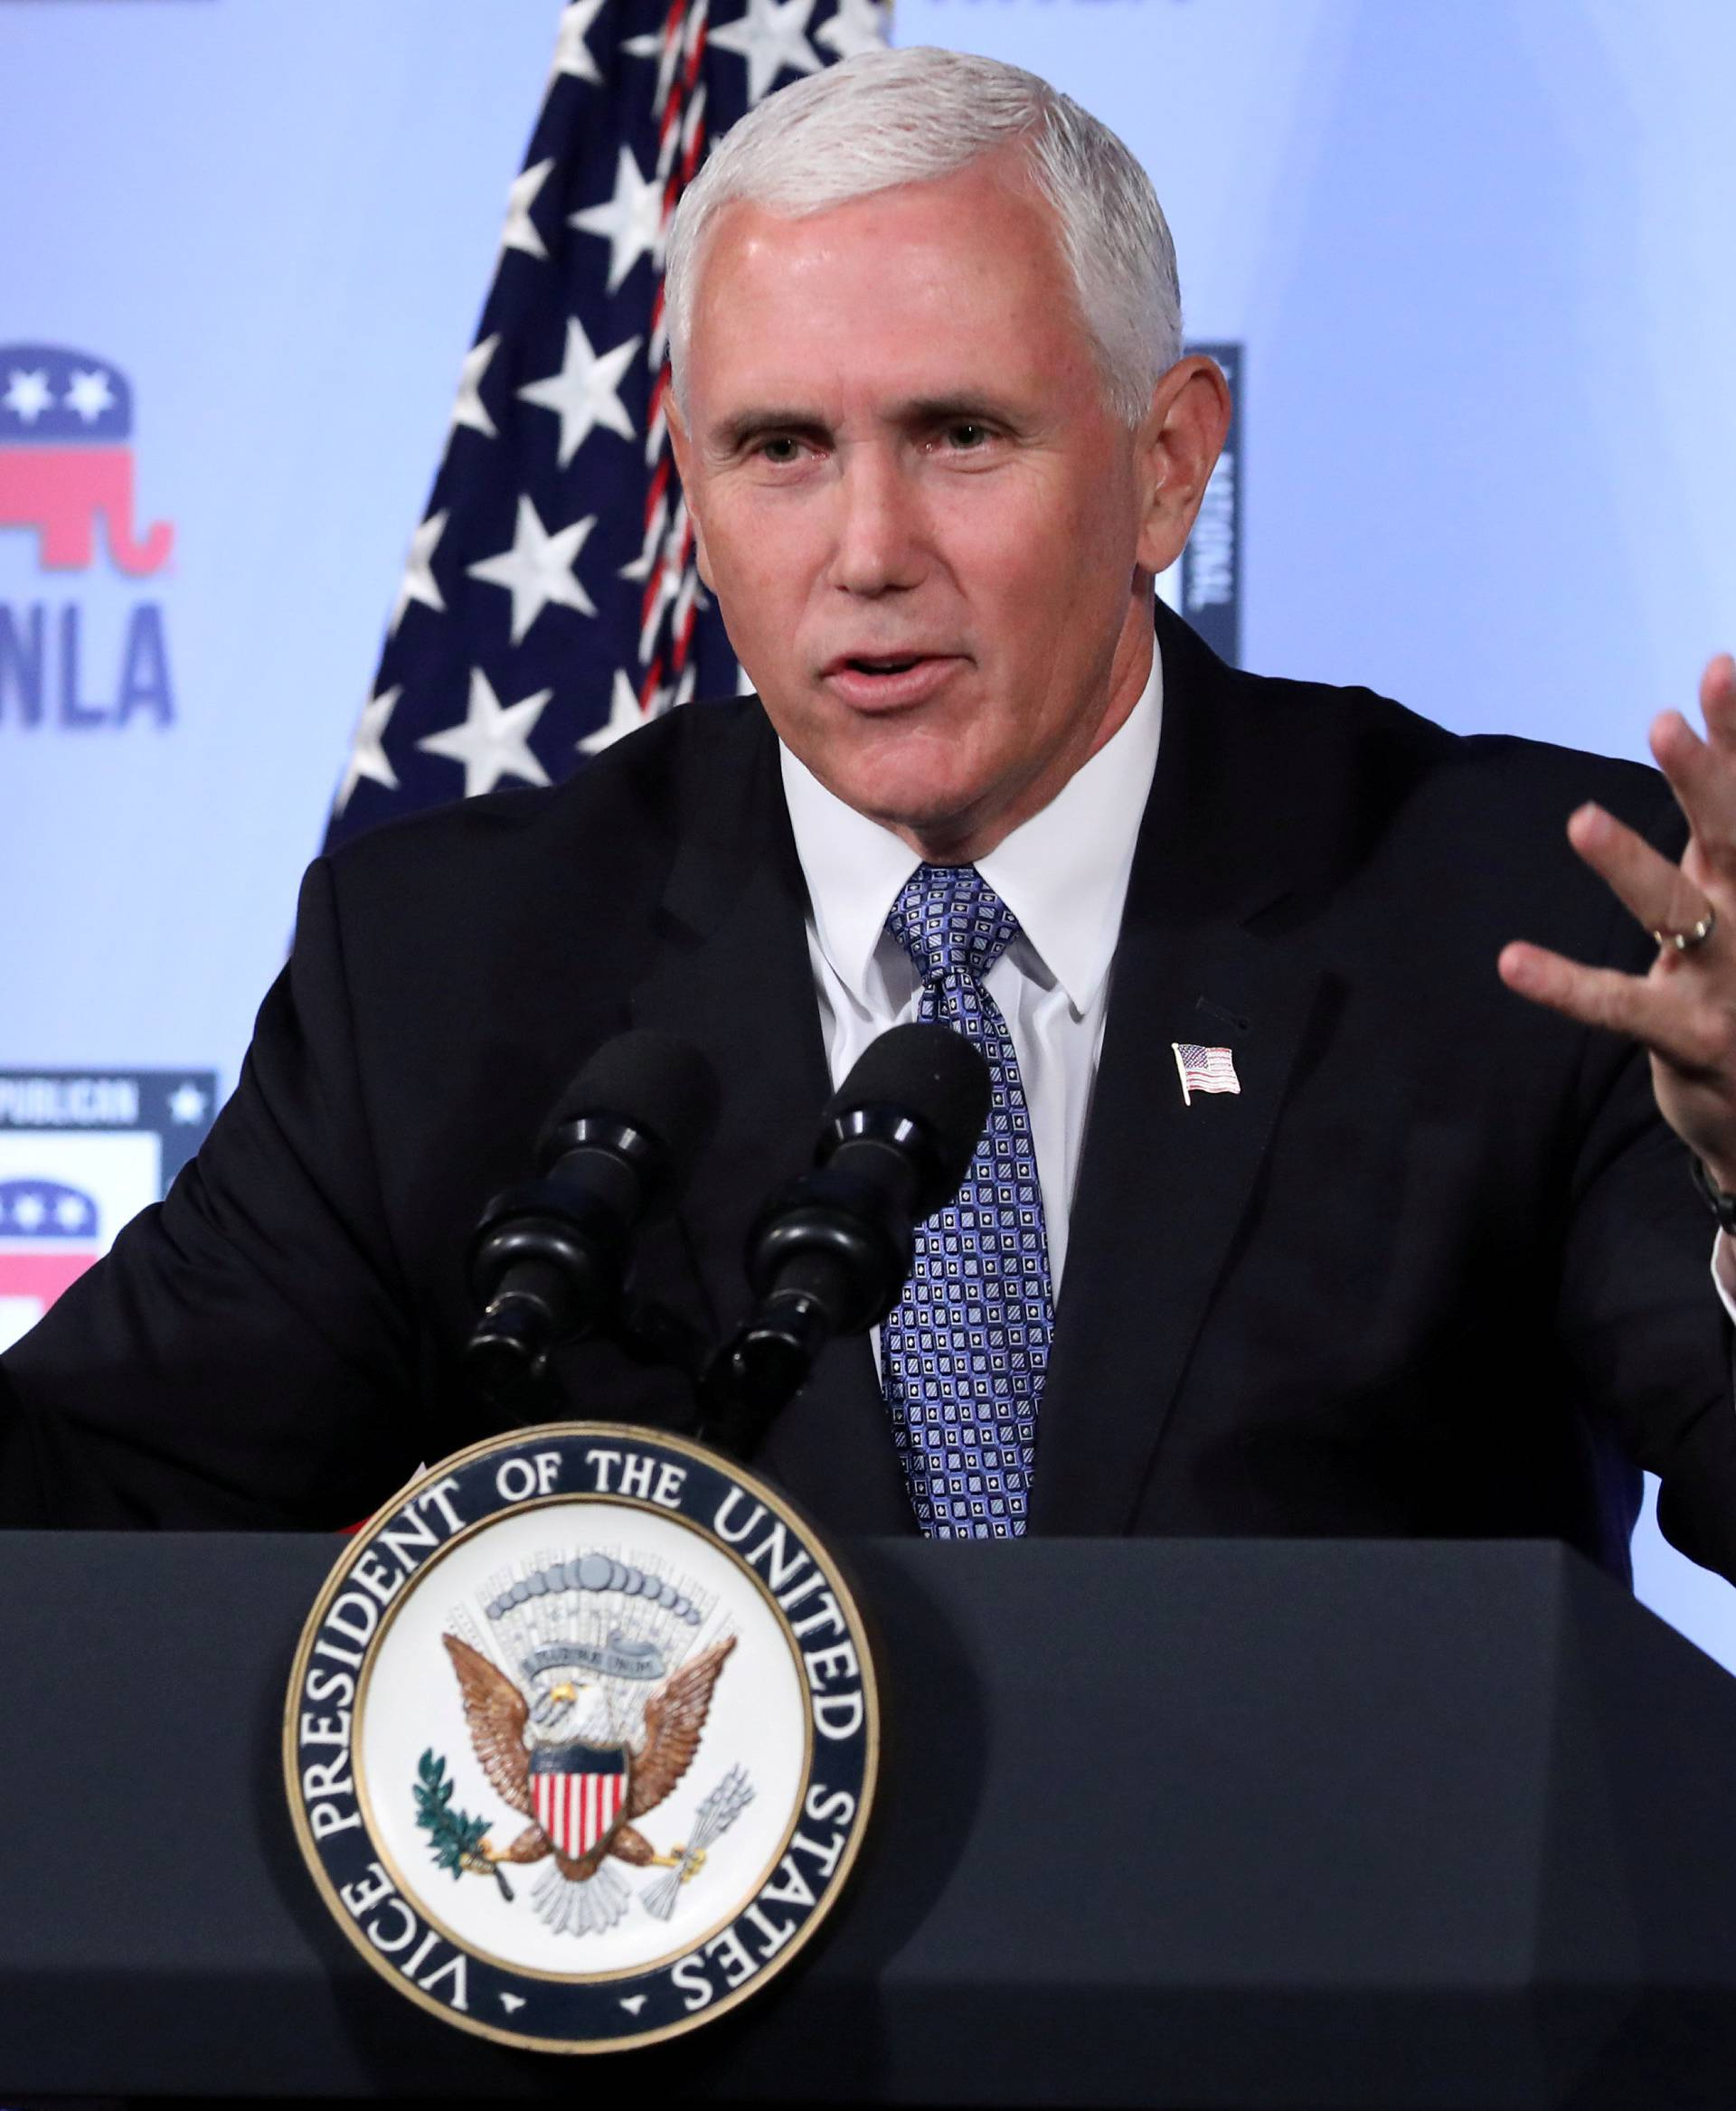 FILE PHOTO: U.S. Vice President Mike Pence delivers a speech in Washington